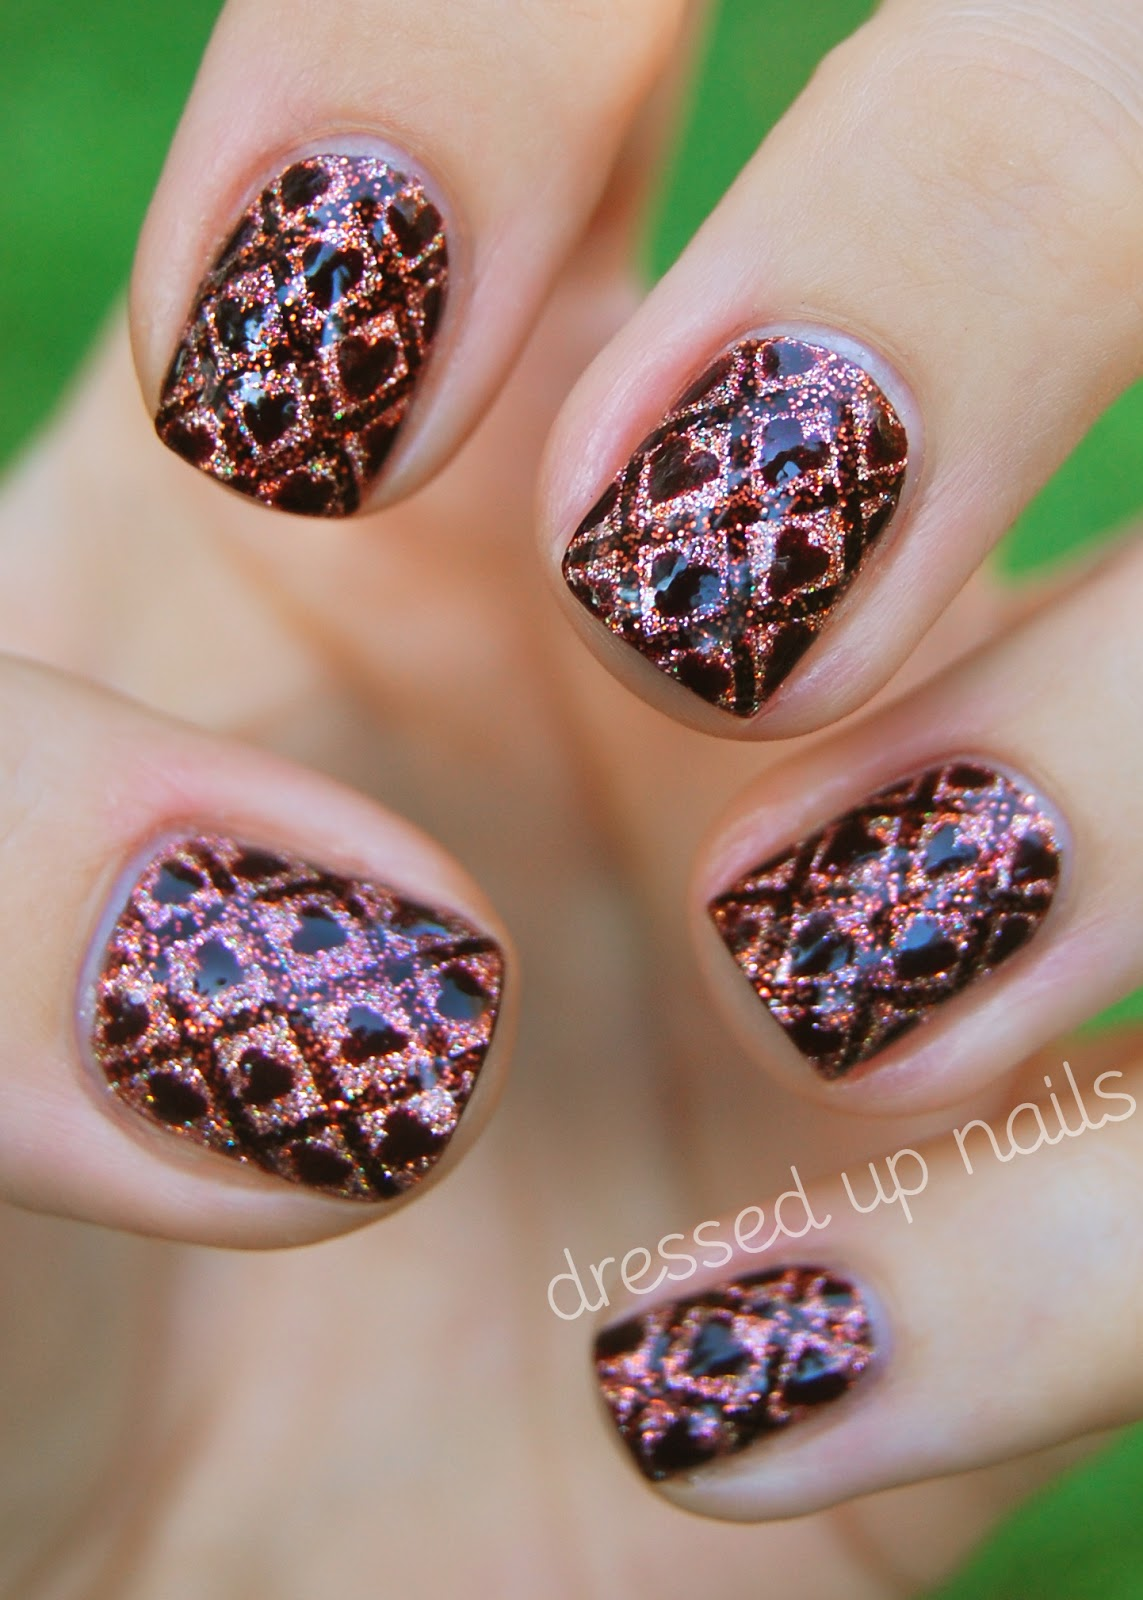 Dressed Up Nails Ornate wallpaper nail art with hearts and GLITTER 1143x1600